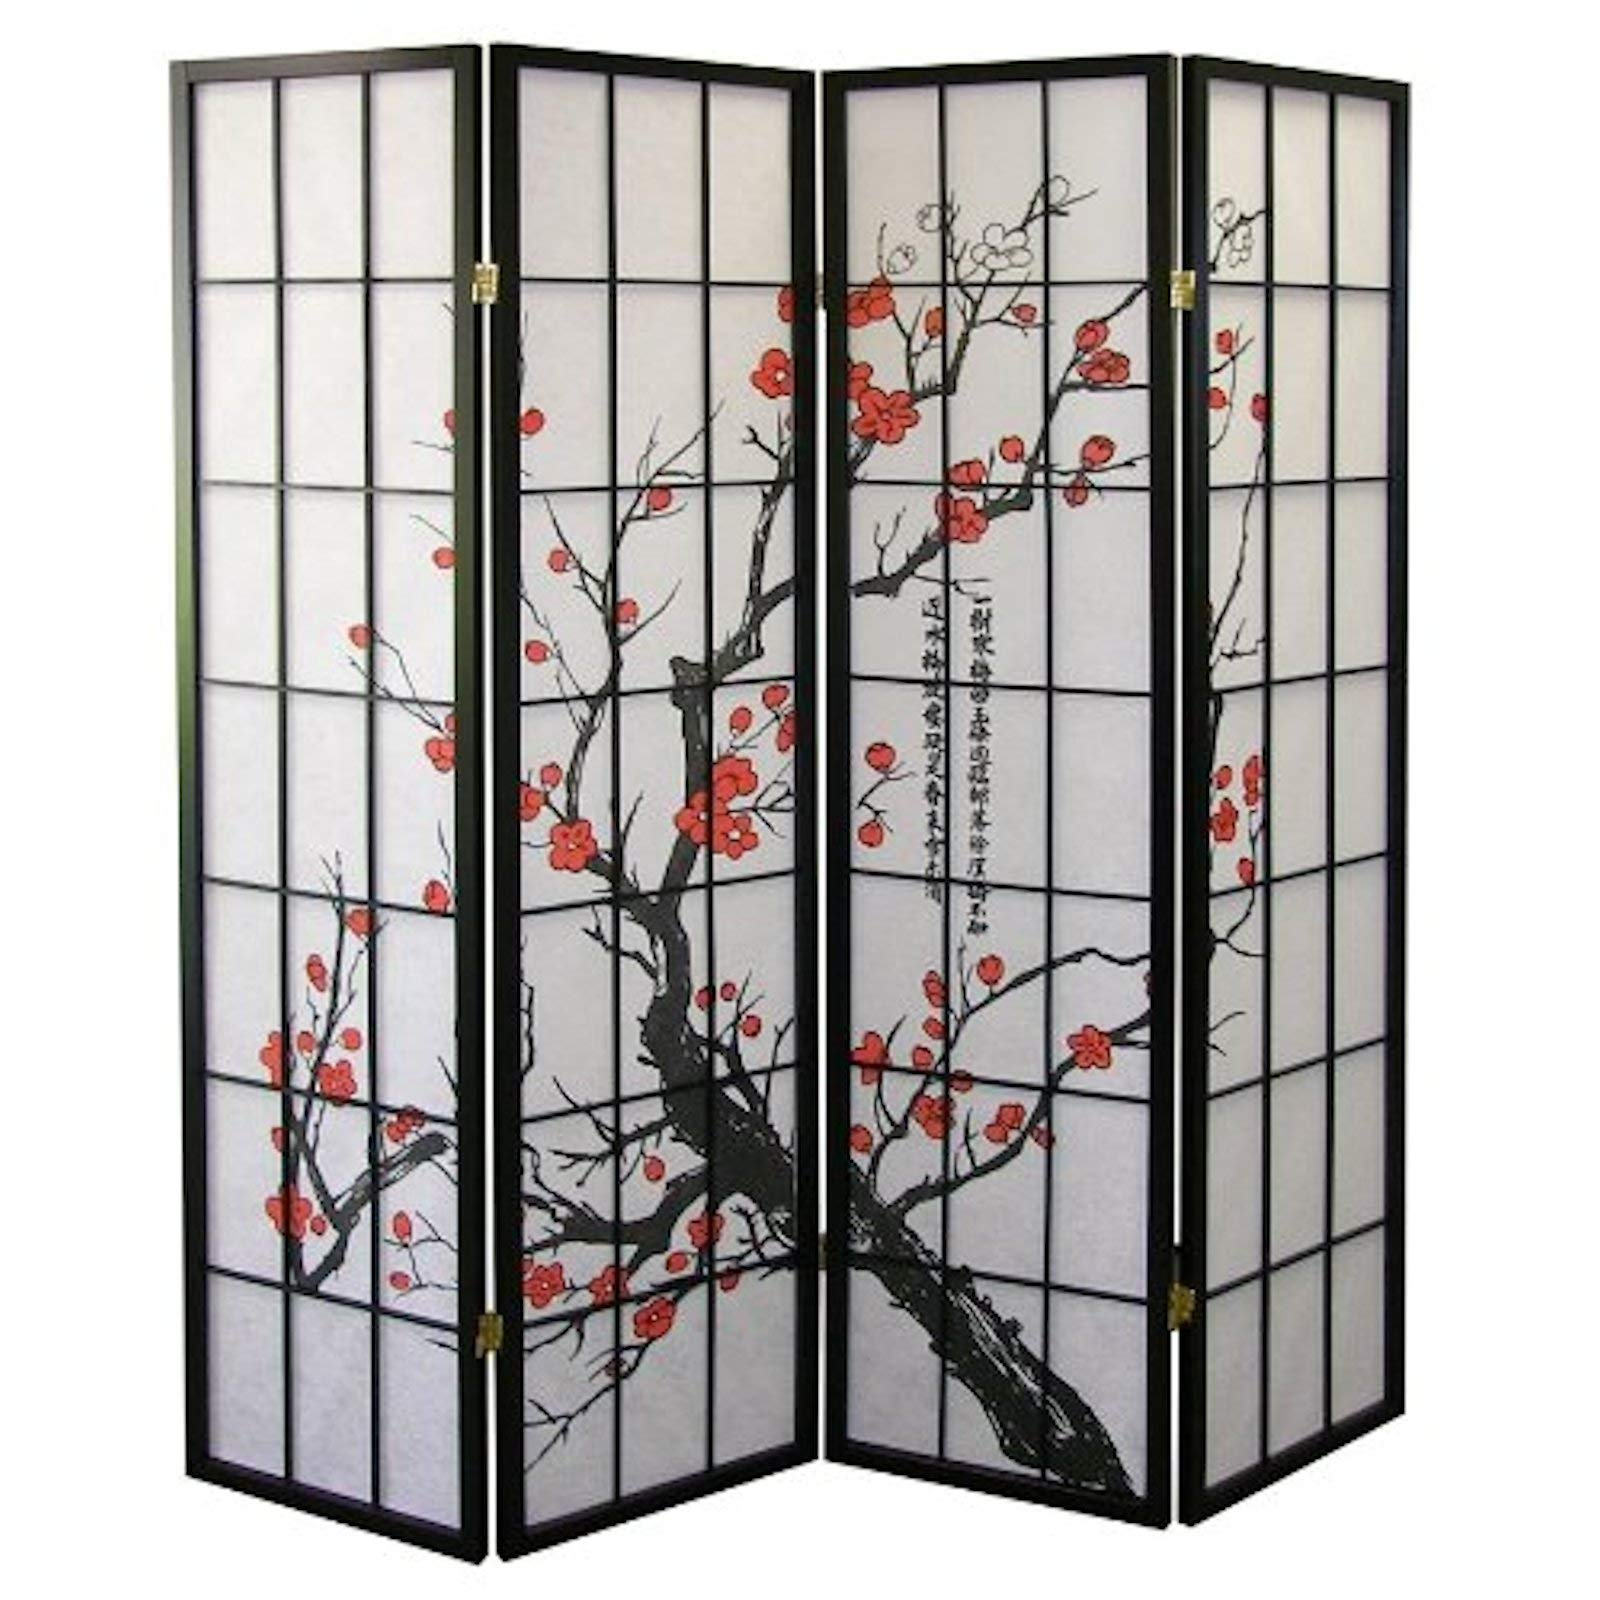 Legacy Decor 4-Panel Blossom Screen Room Divider, Black by Legacy Decor